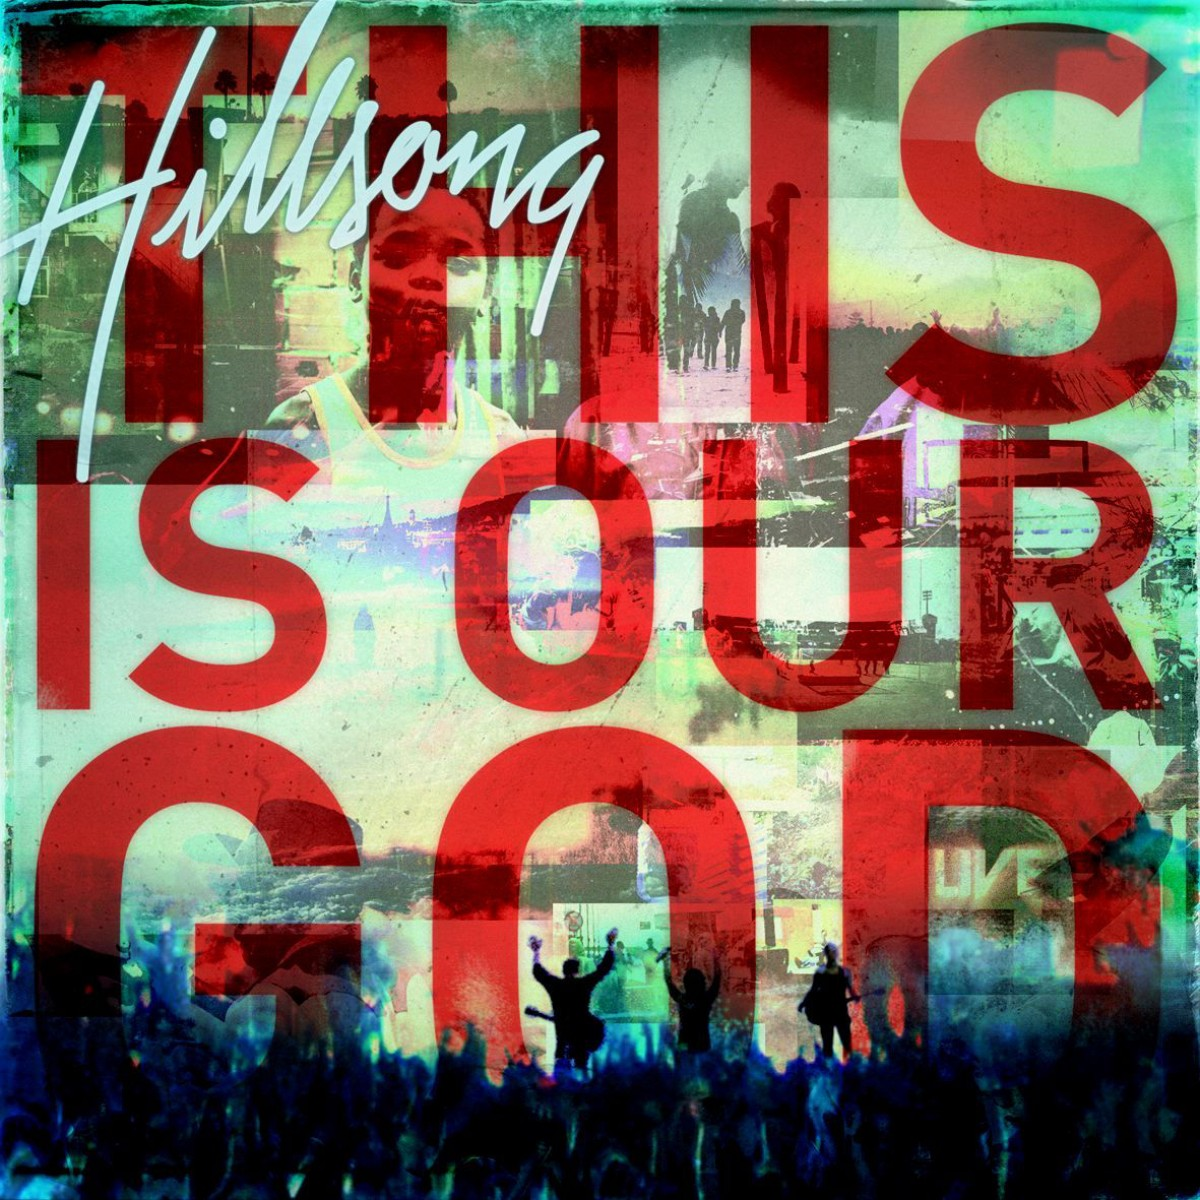 Hillsong - This Is Our God (Split Tracks) CD - WHS/ACD  /217C/